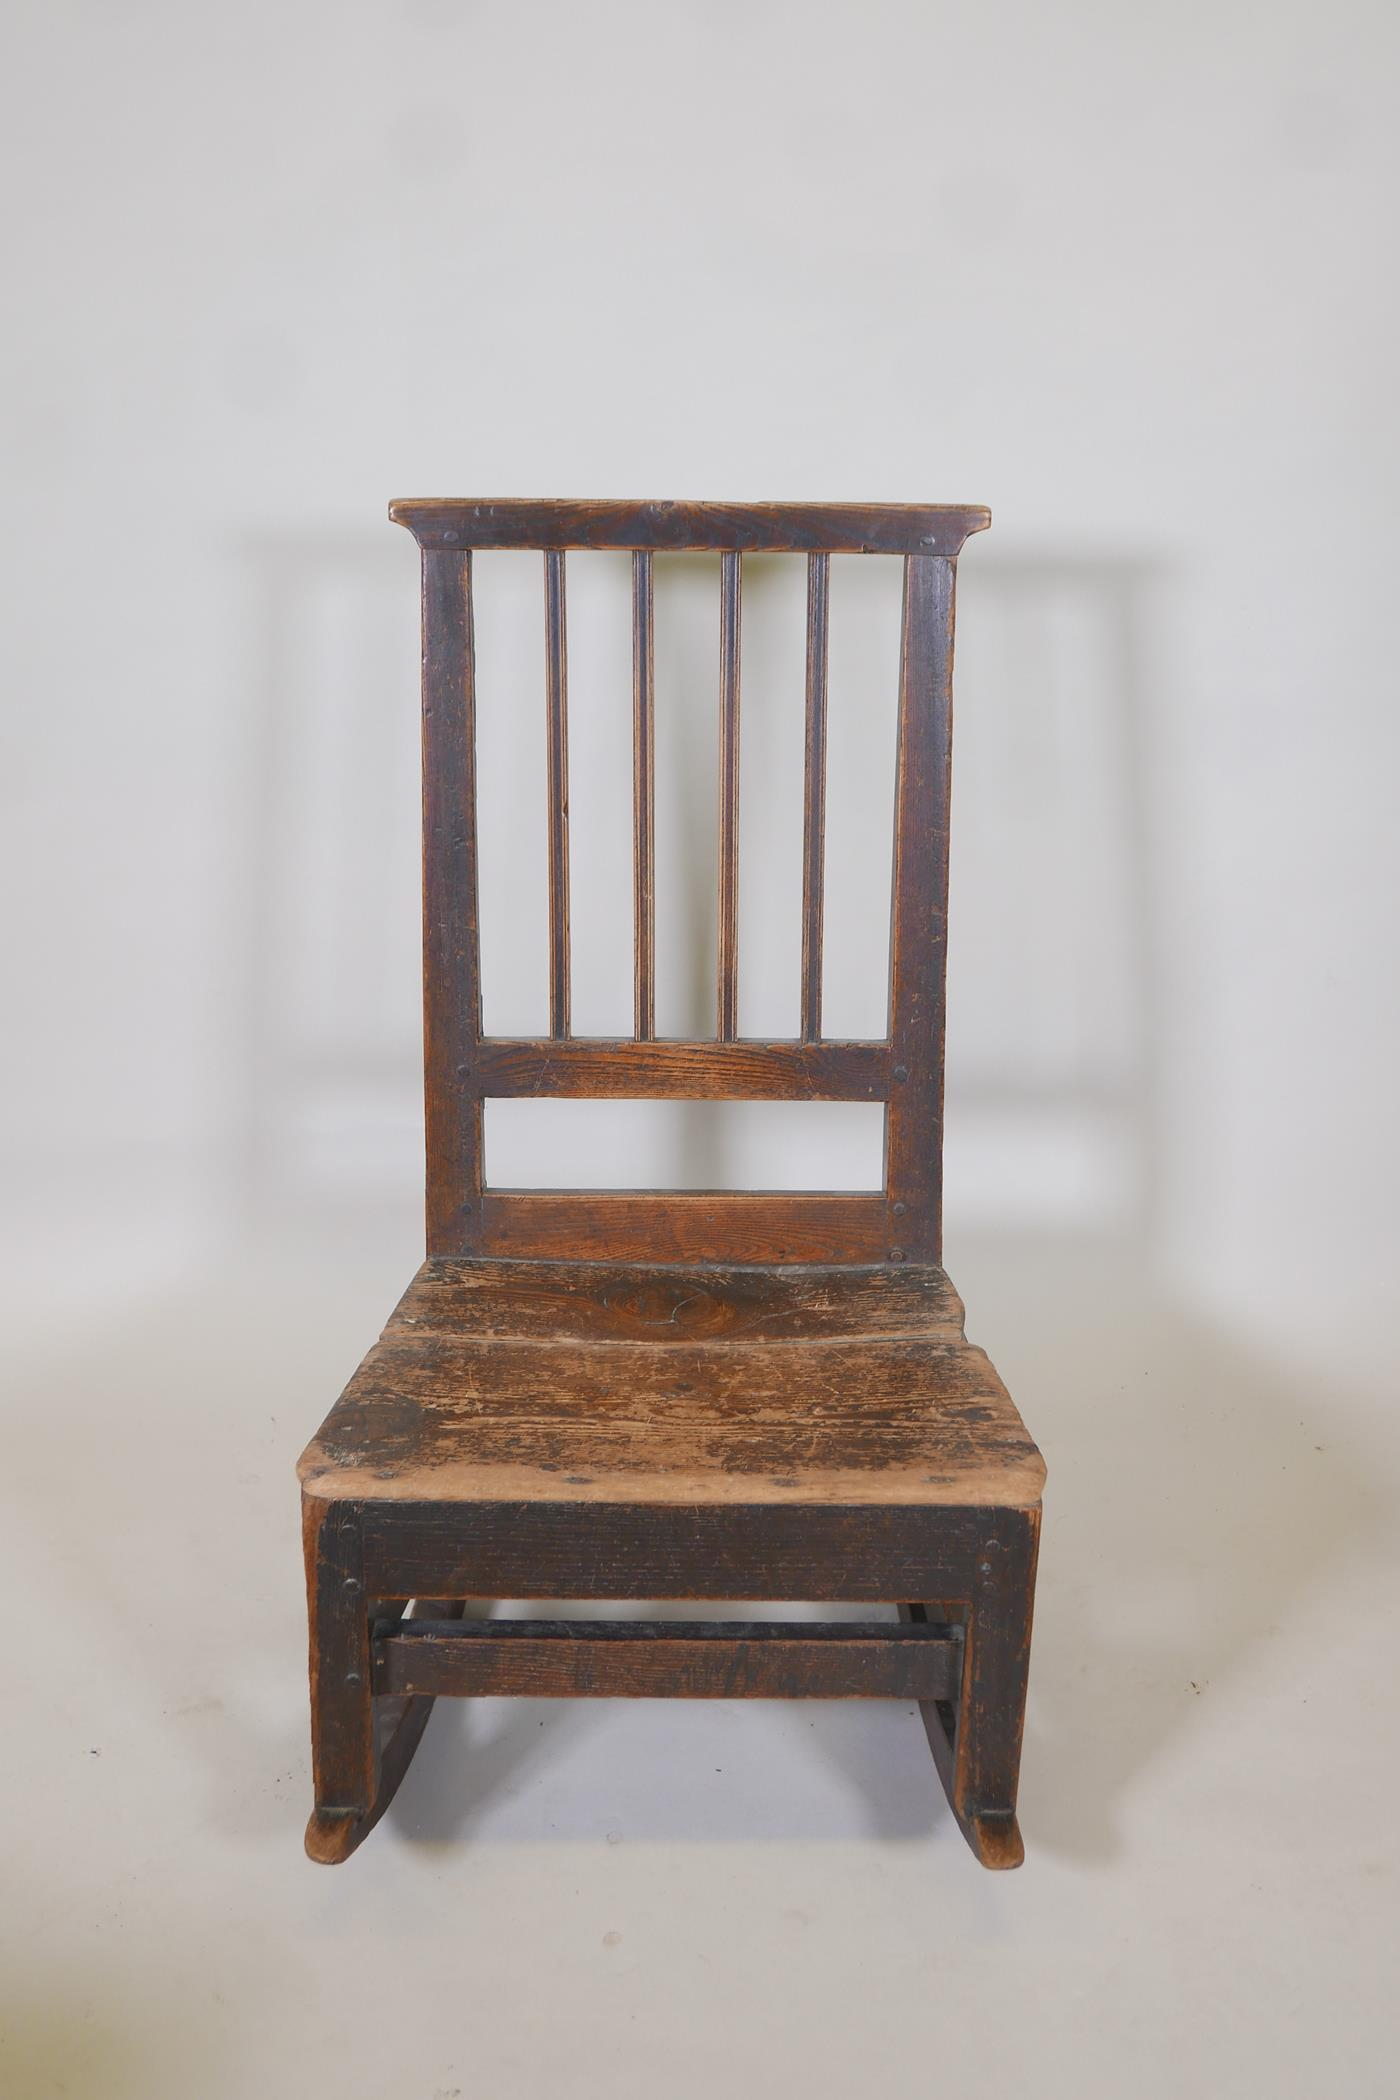 An C18th elm ladderback rocking chair - Image 2 of 2